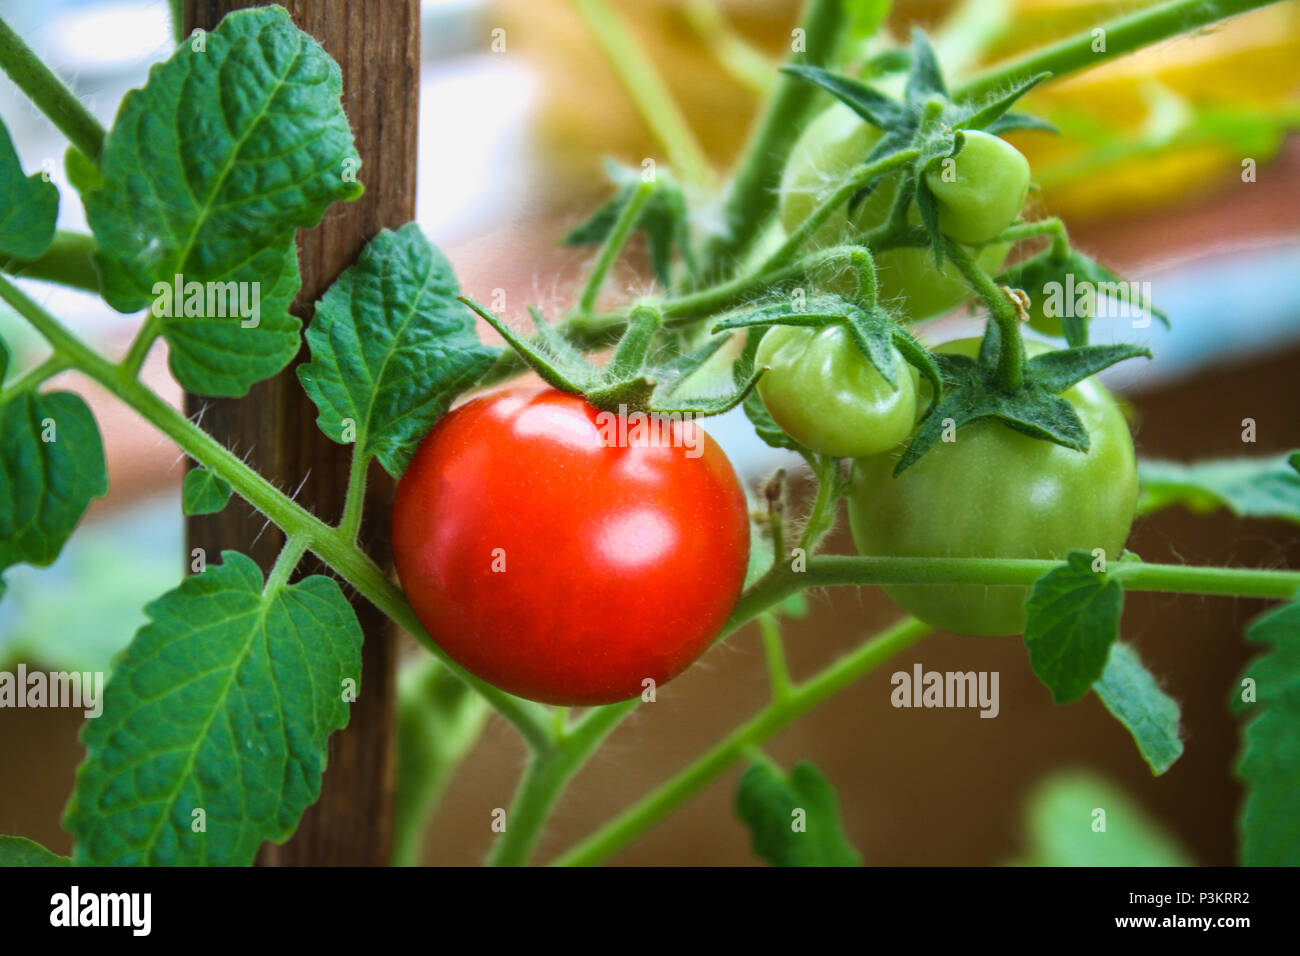 Tomato Wuppertal Farming Balcony Stock Photos Farming Balcony Stock Images Alamy